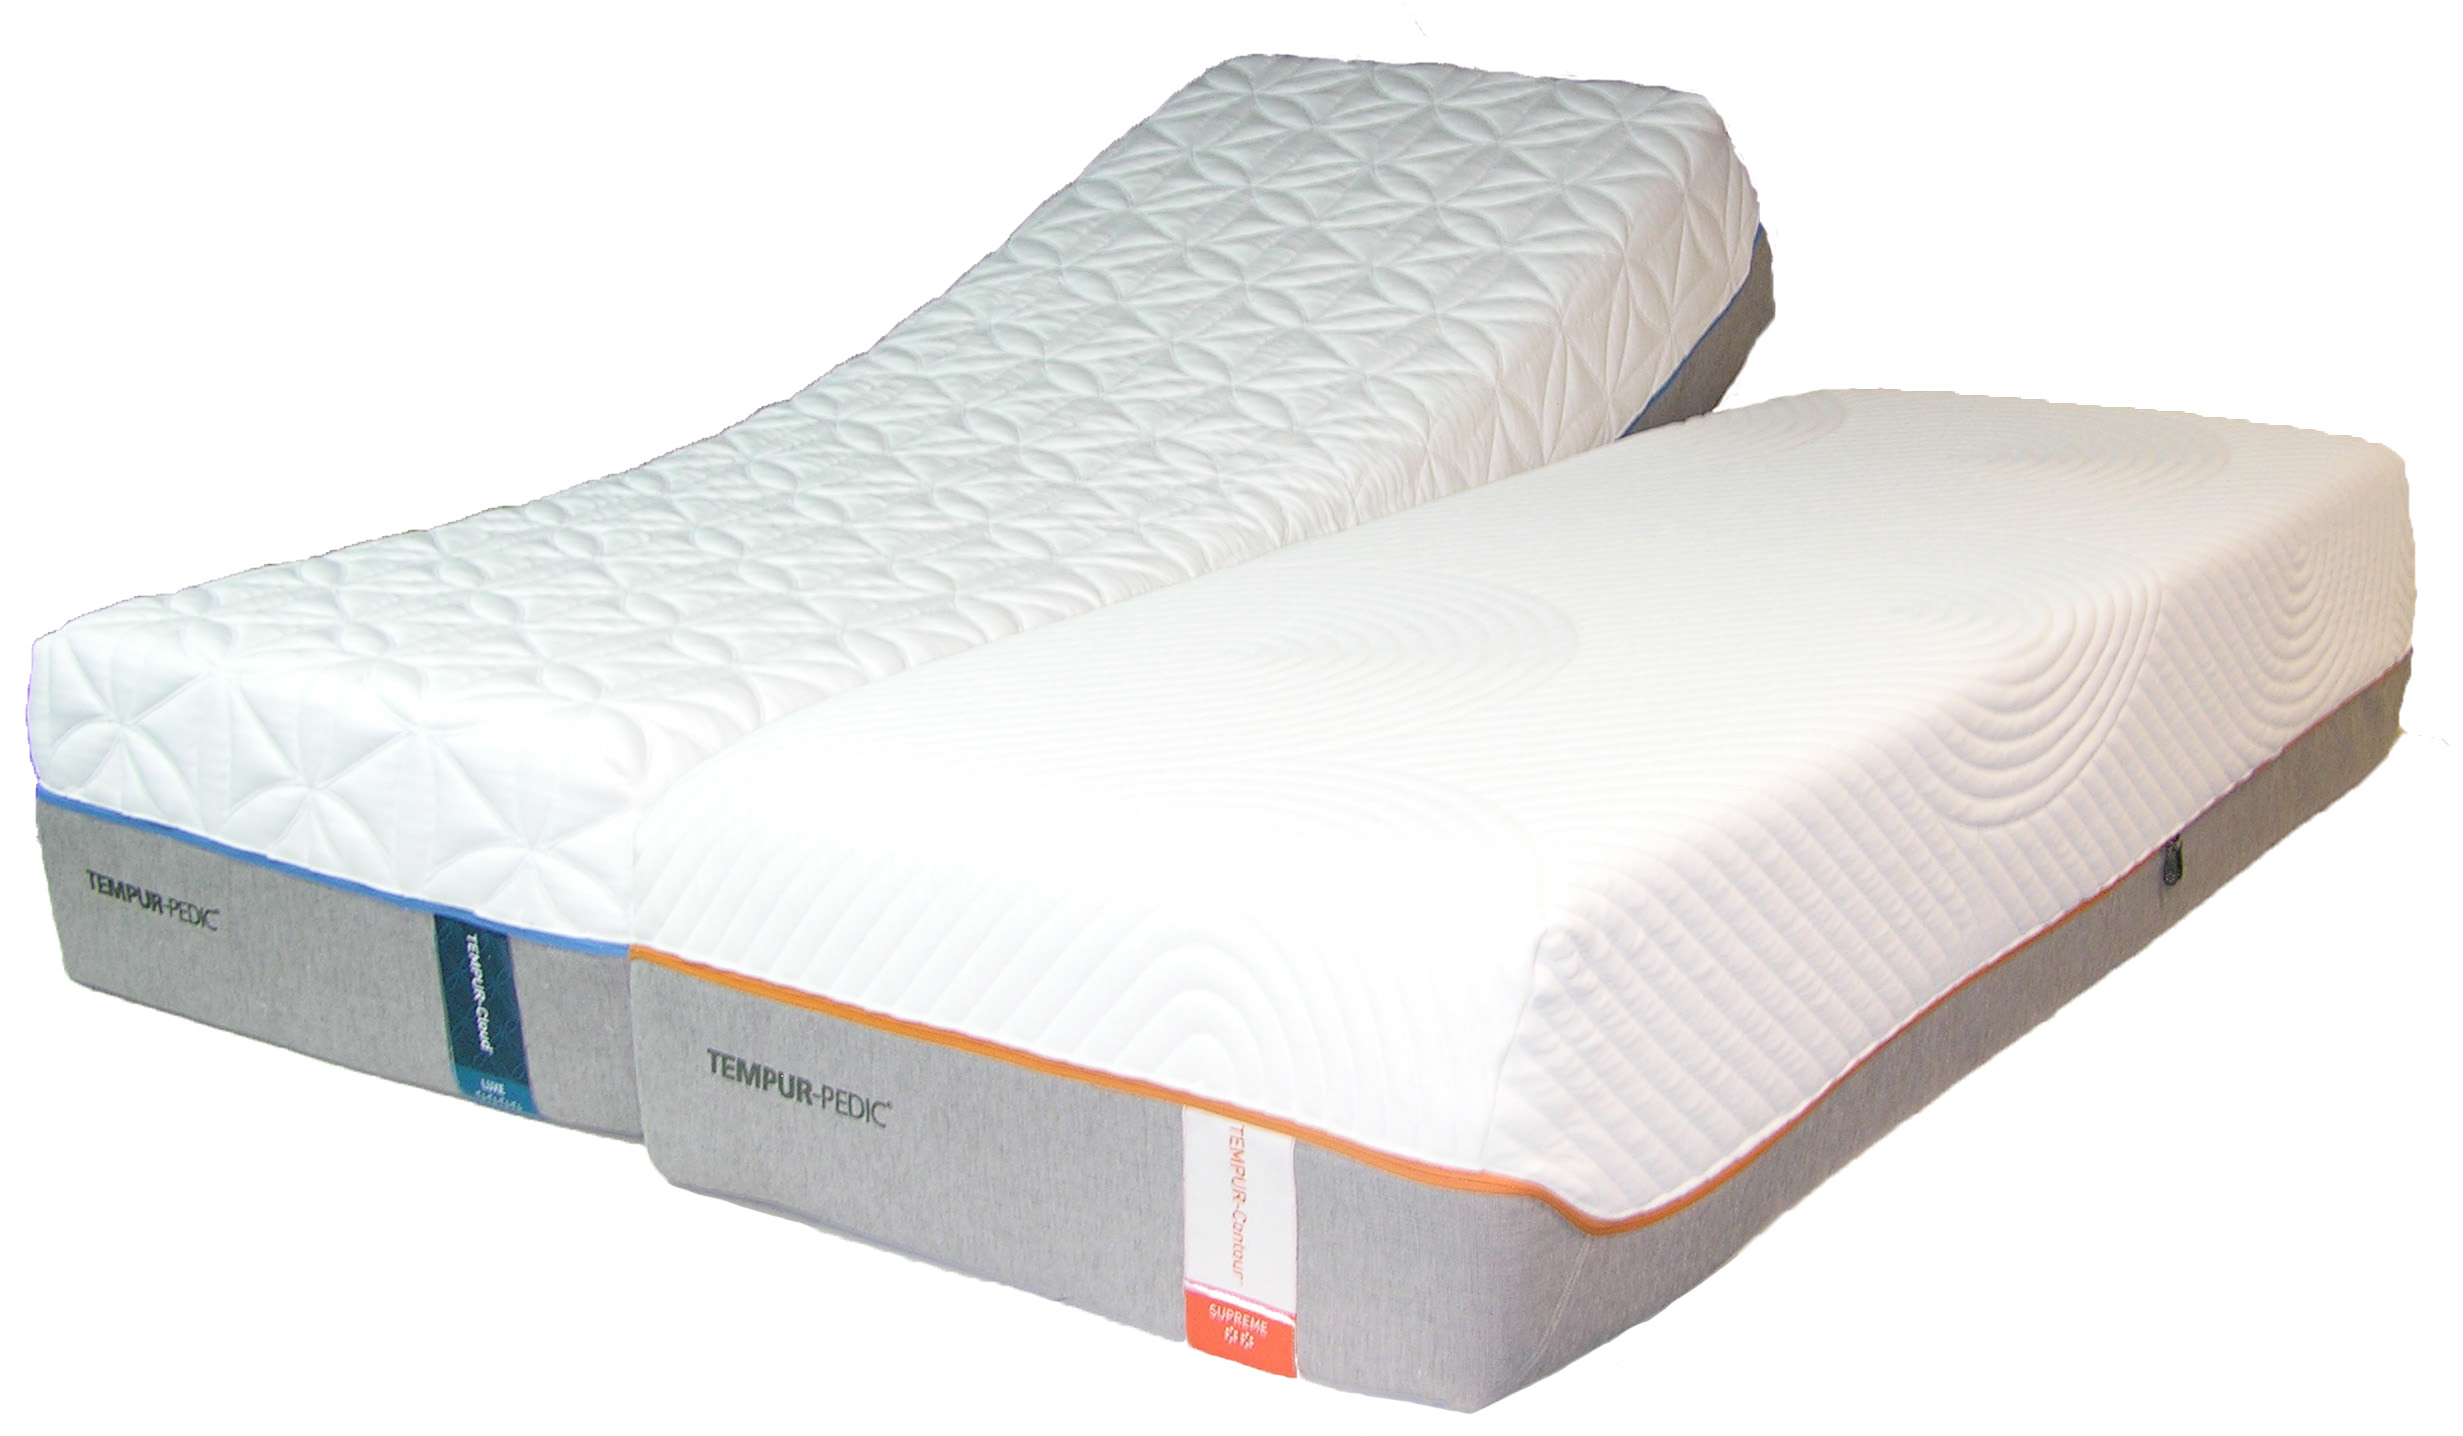 Adjustable tempur pedic mattress adjustable bed temperpedic ca mattress tempurpedic tempur Queen size mattress price